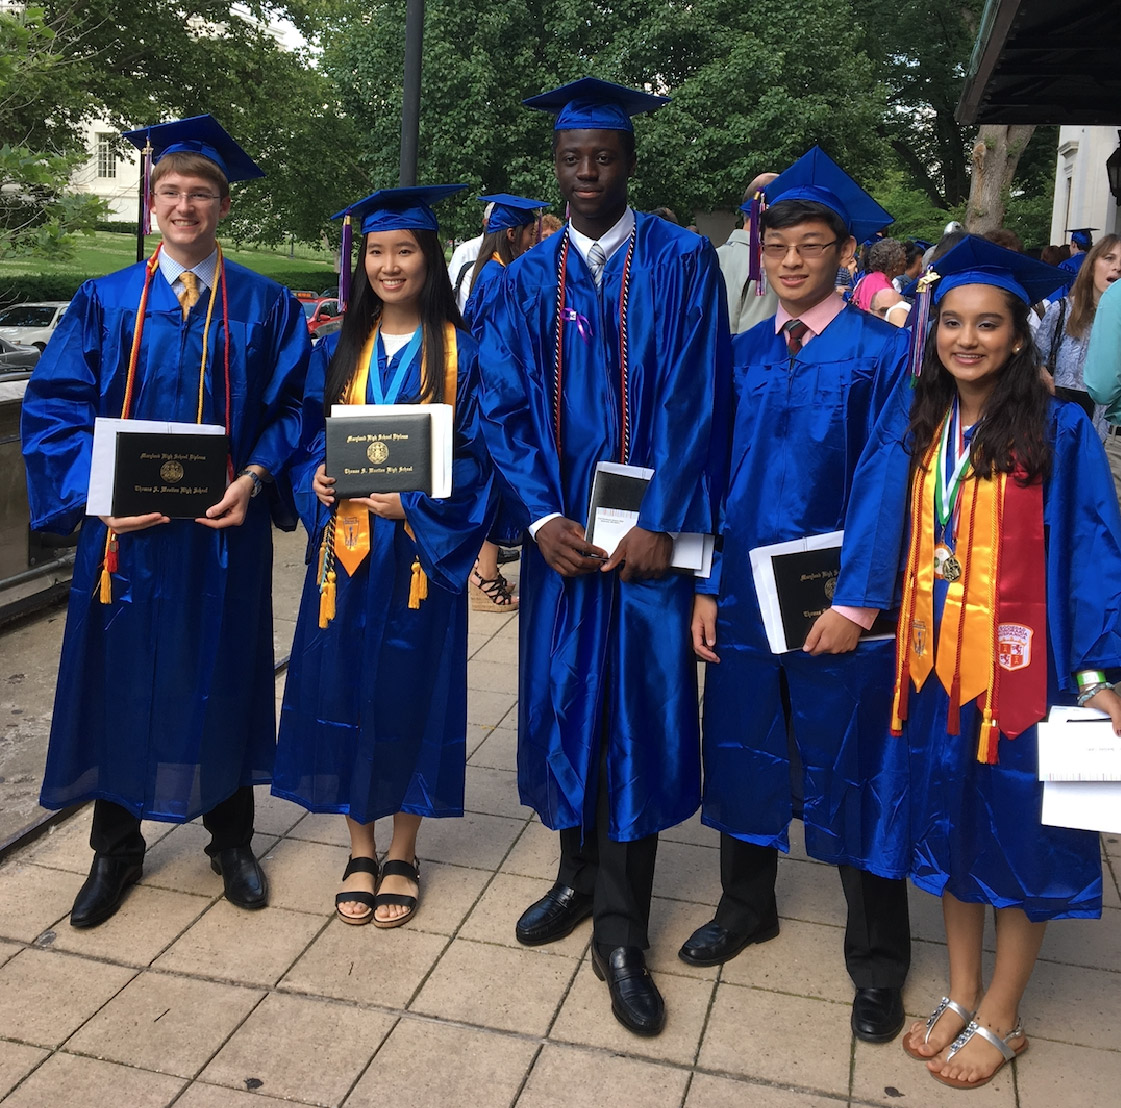 The 2017 Dr. Doran Scholars are (left to right) Jackson Helling, Eileen Chen, Kwame Frimpong, Evans Chen and Gunleen Deol. They're pictured outside DAR Constitution Hall.